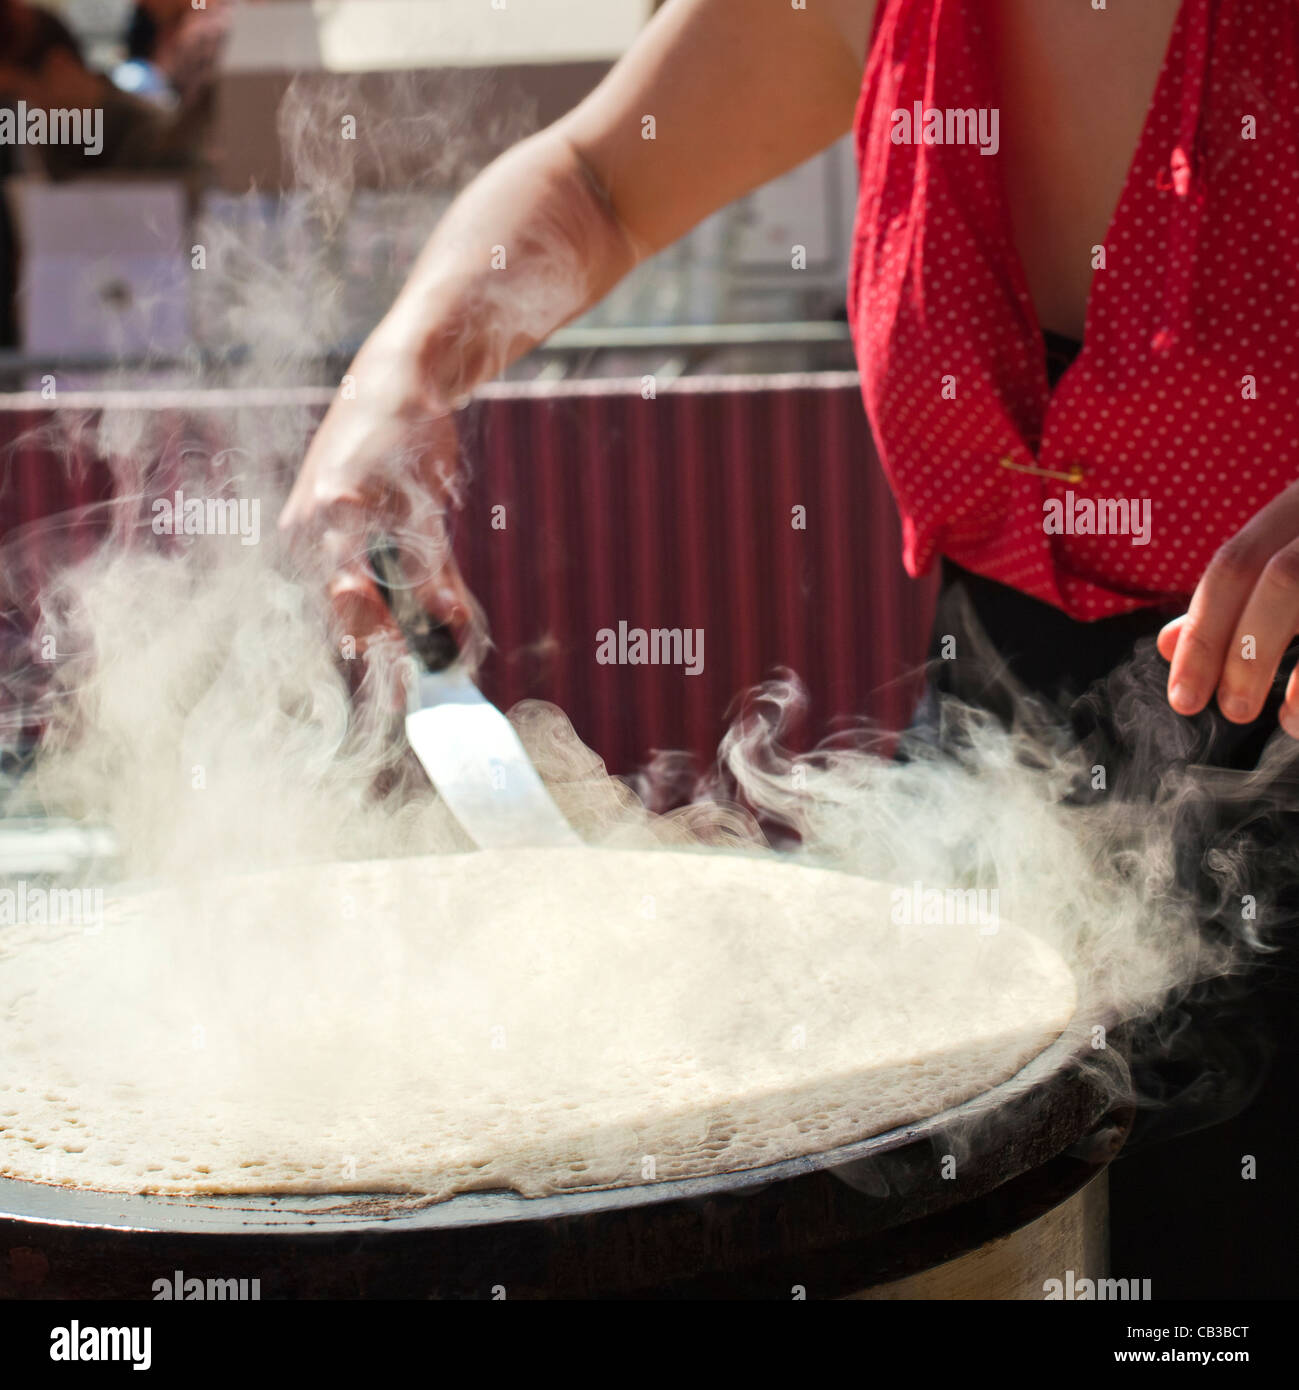 High Noon community festival is a Northcote local music fest in Melbourne, Australia the making food/crepes on the Stock Photo